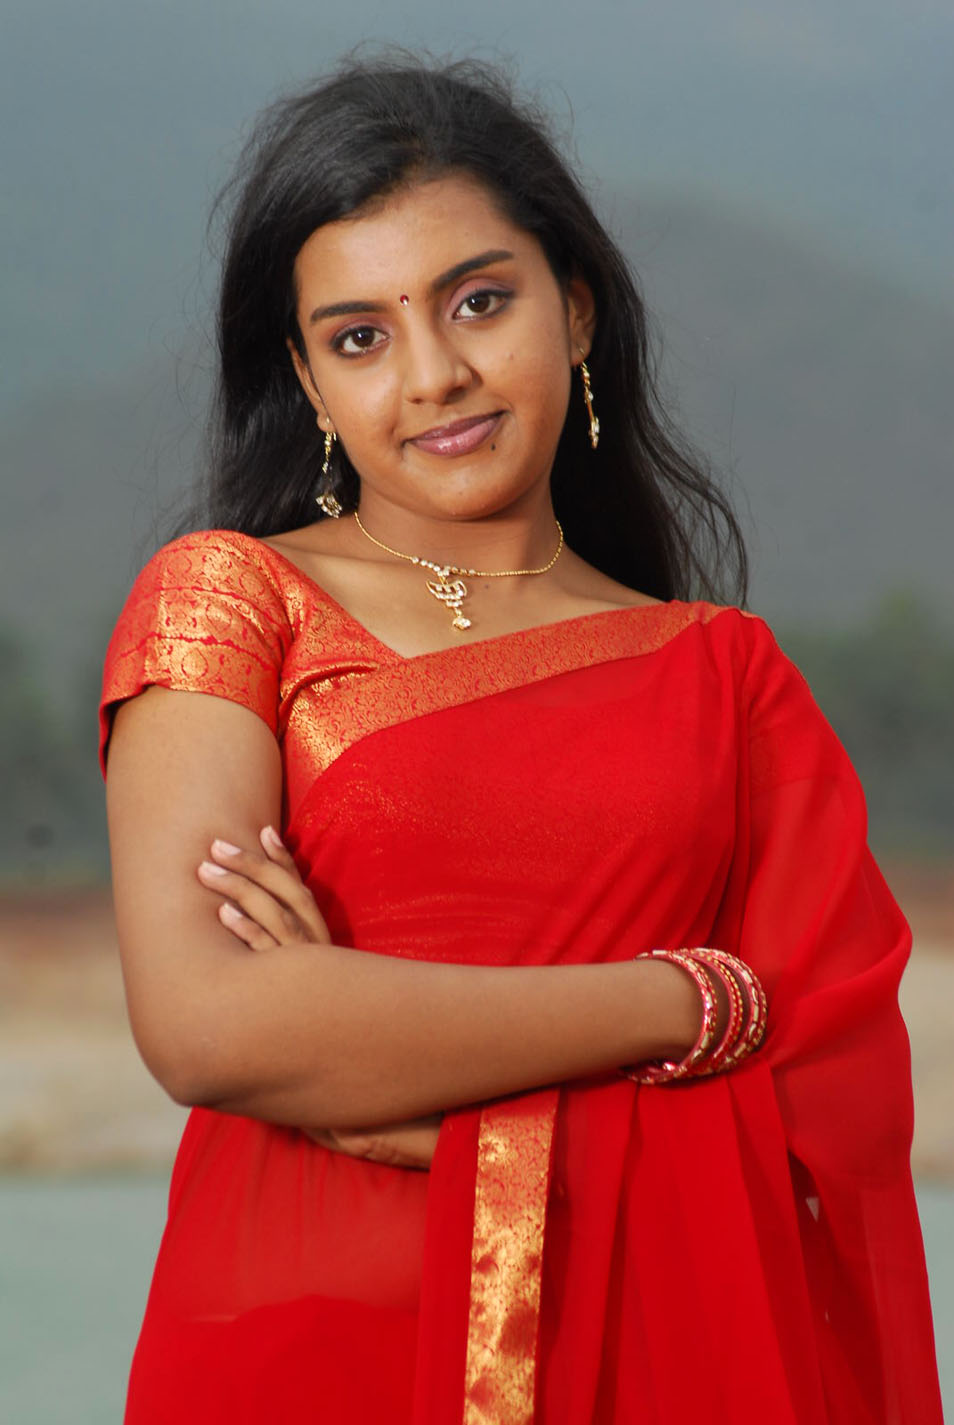 nude tamil girls pictures